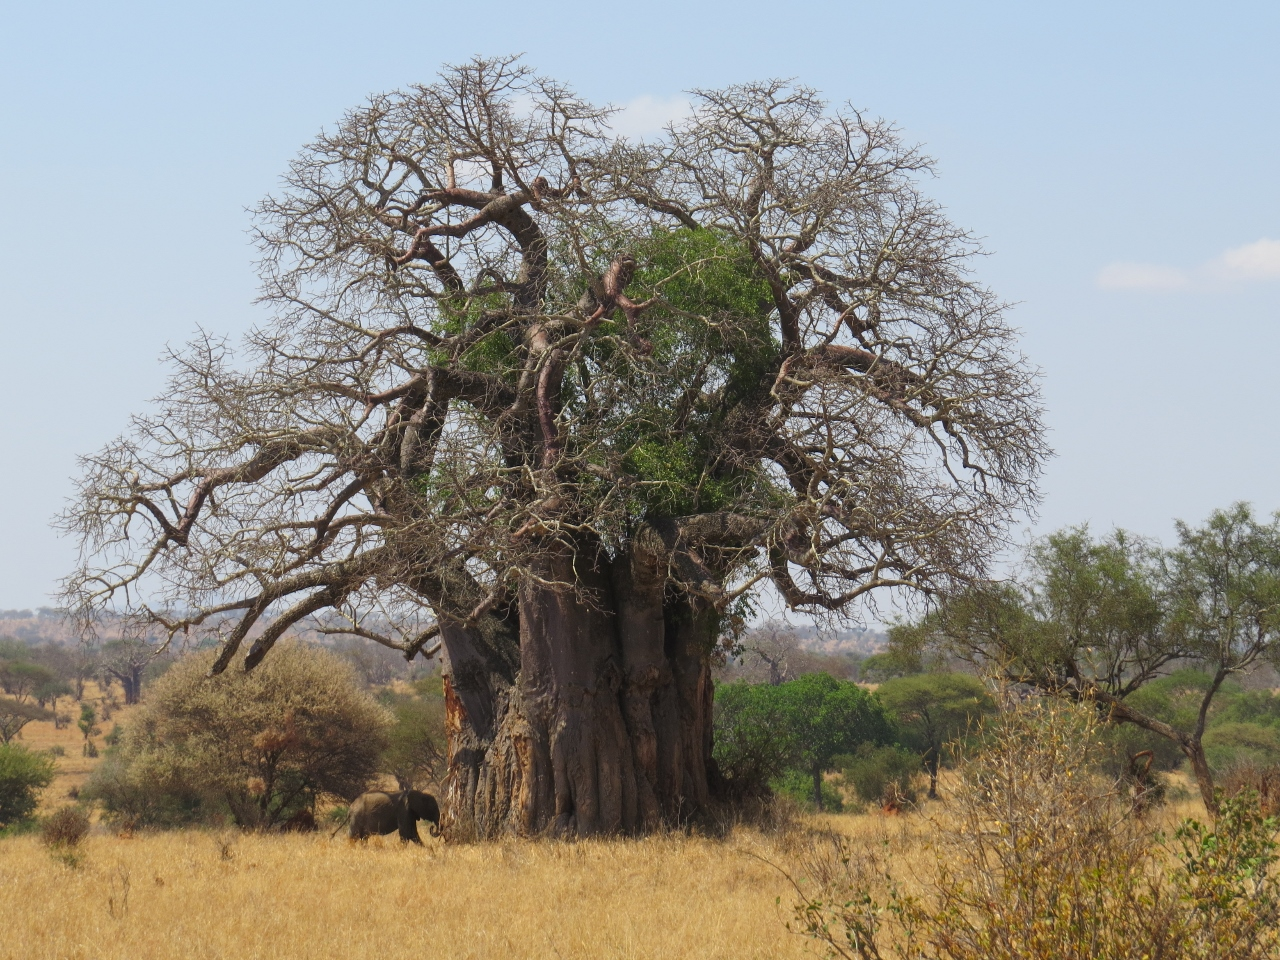 Elephant dwarfed by centuries-old baobab tree near Randilen Wildlife Mangement Area by Tarangire National Park, Tanzania Picture Galib Mangat